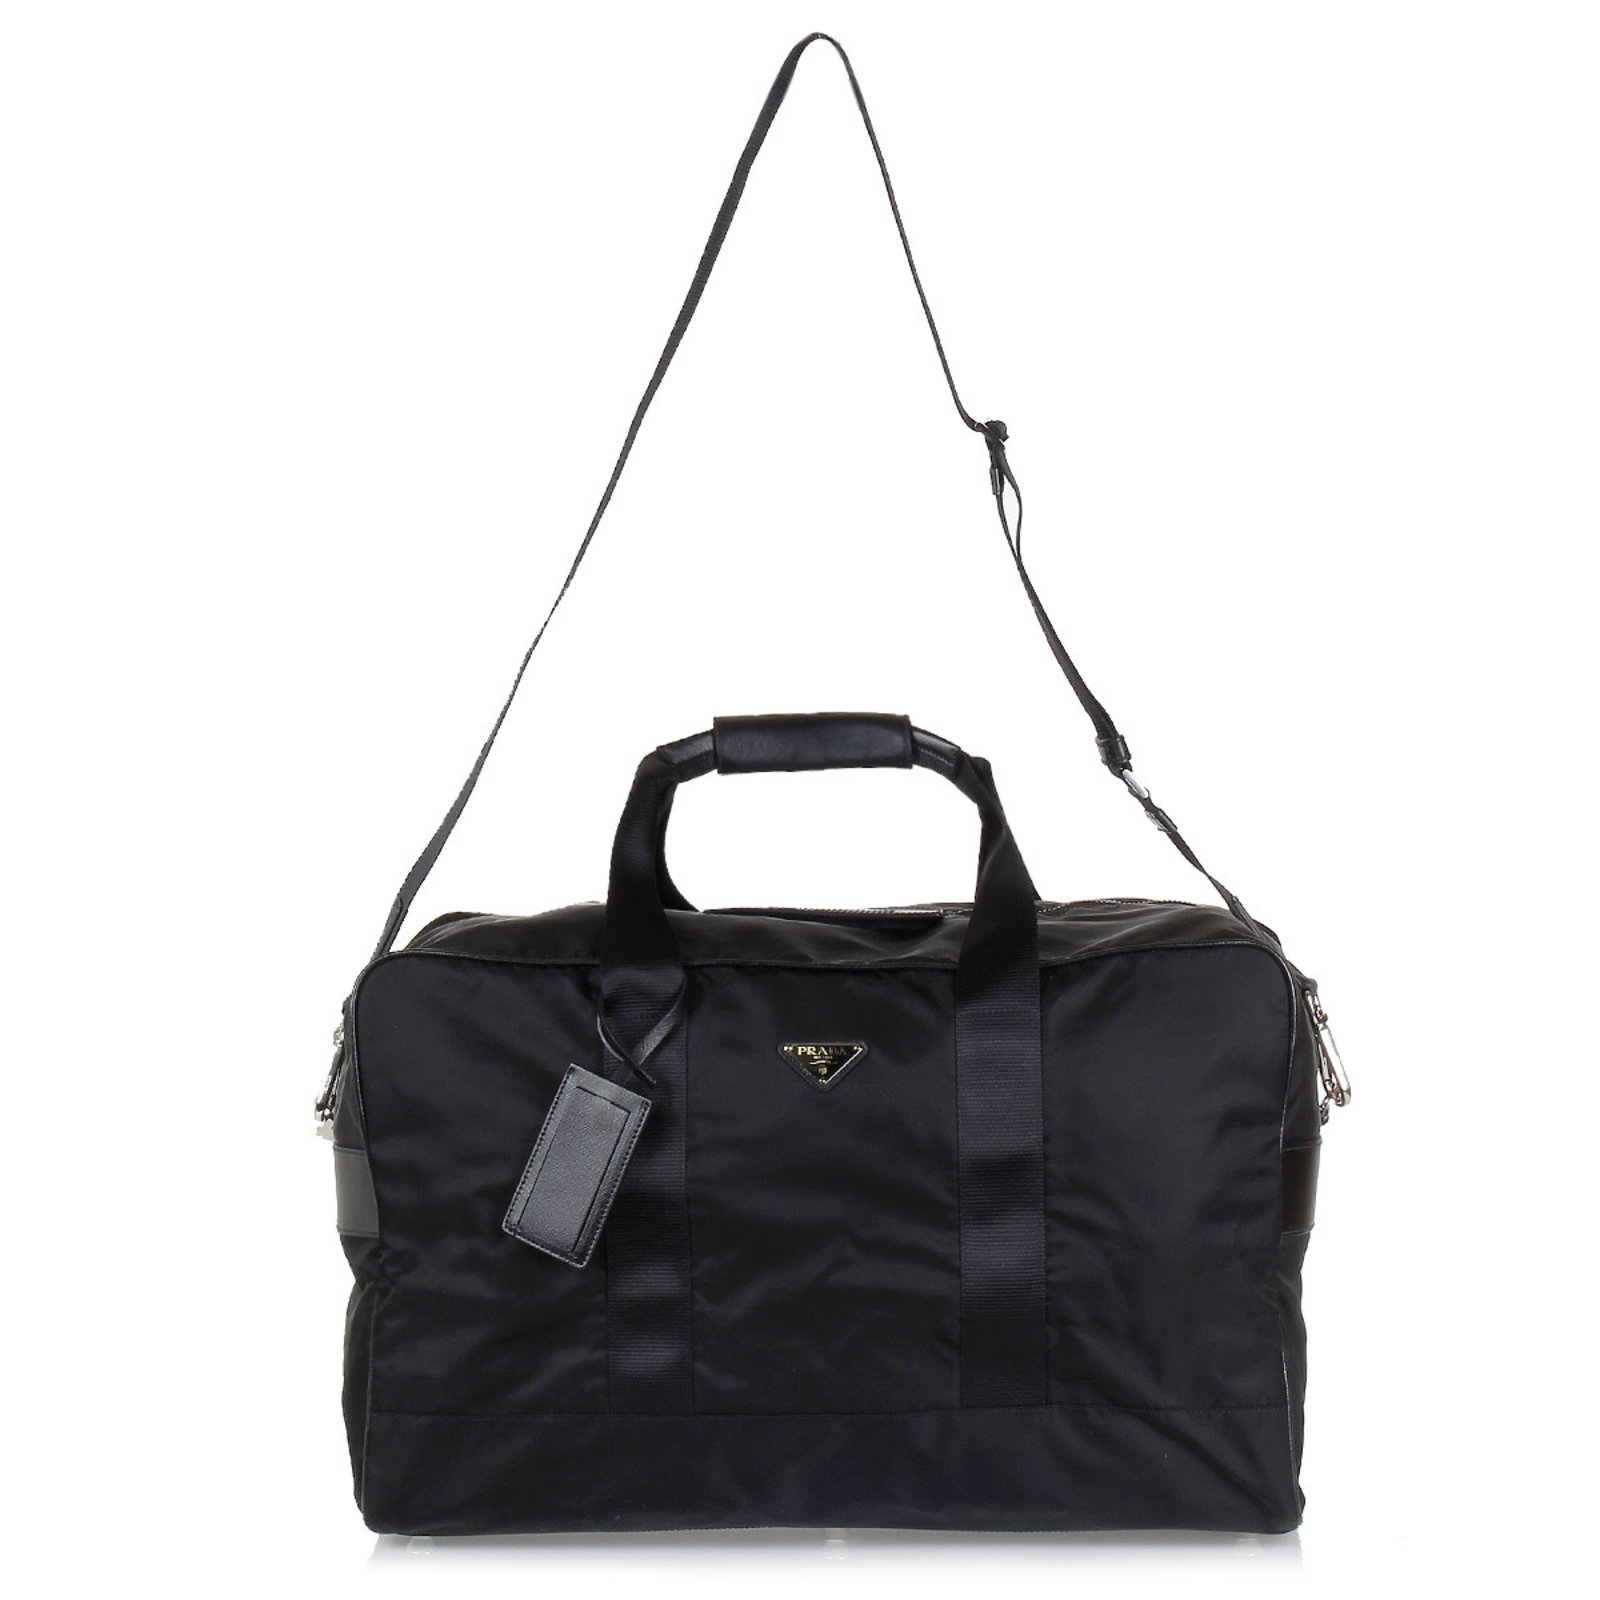 470972368050 ... france prada duffle travel bag new bags briefcases nylon black ref.43724  joli closet 15d8c